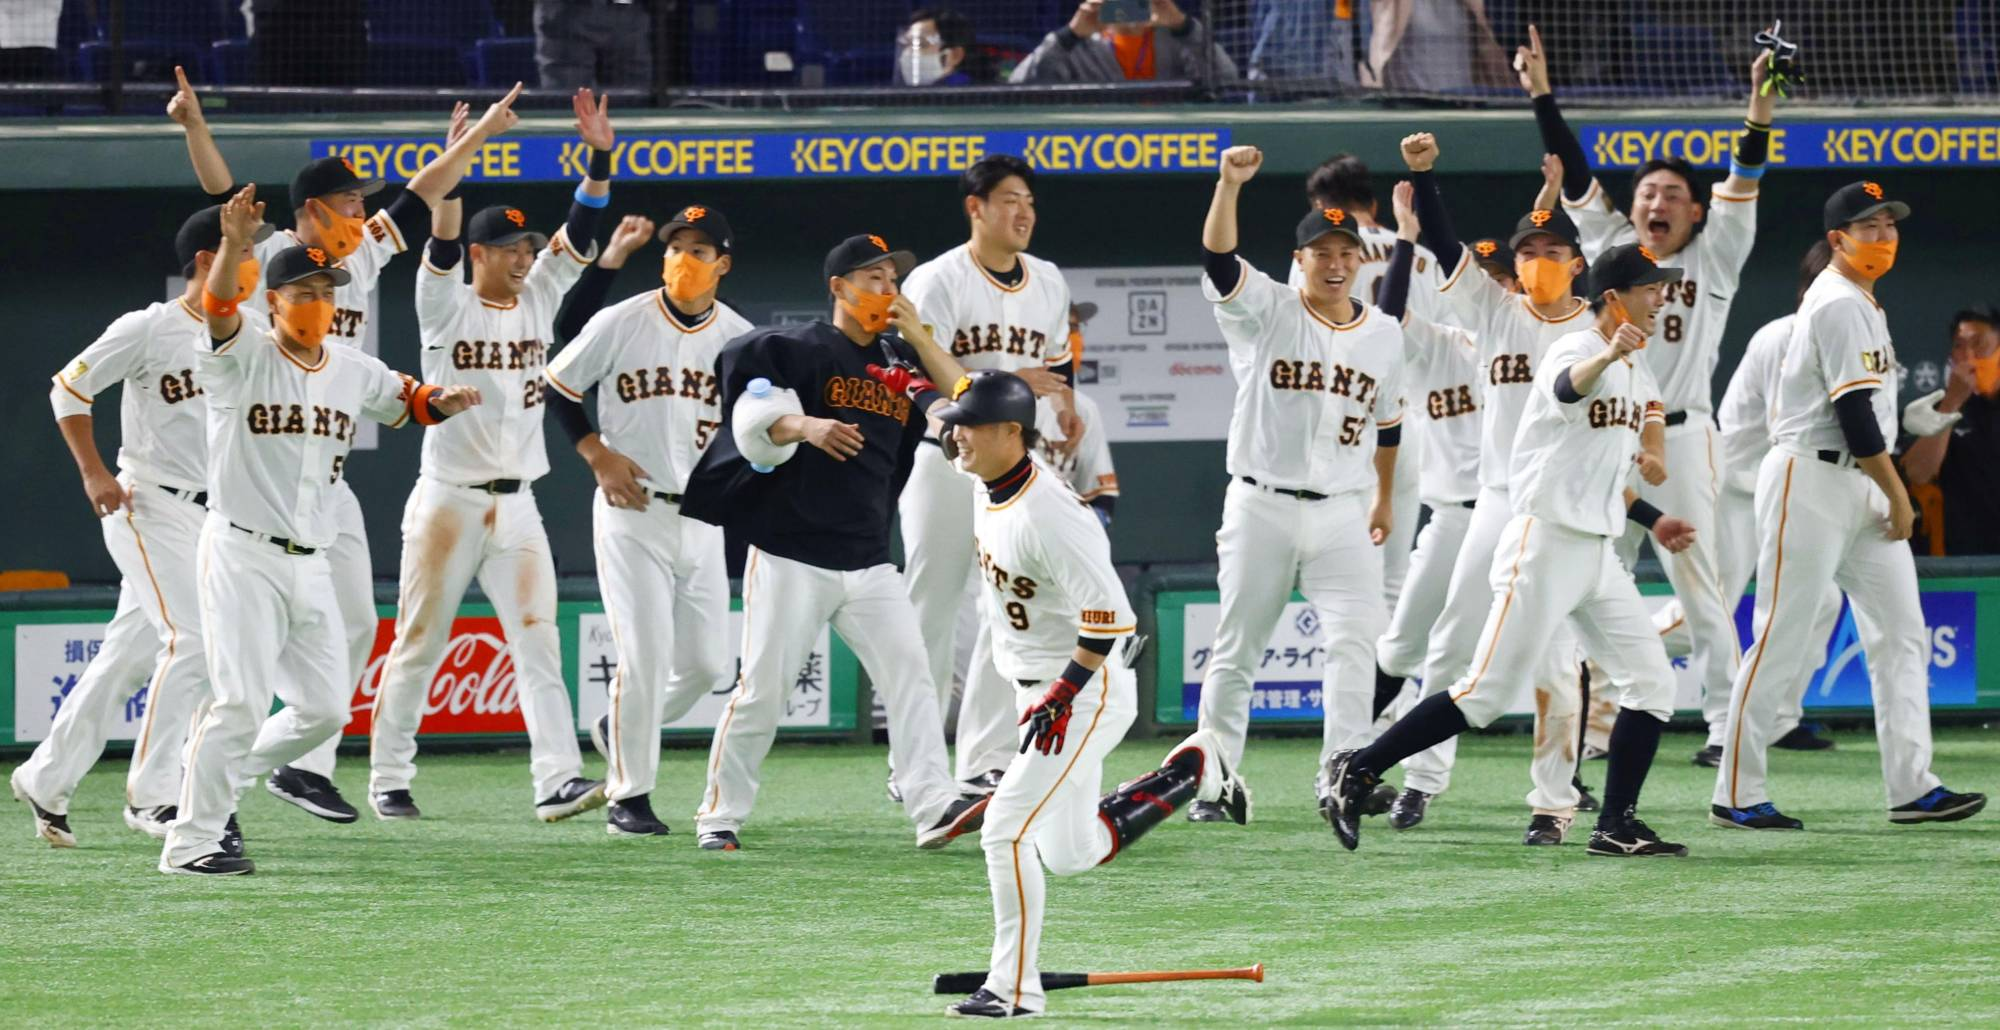 The Giants' Yoshiyuki Kamei begins to round the bases as his teammates celebrate after his walk-off home run on Friday at Tokyo Dome. | KYODO